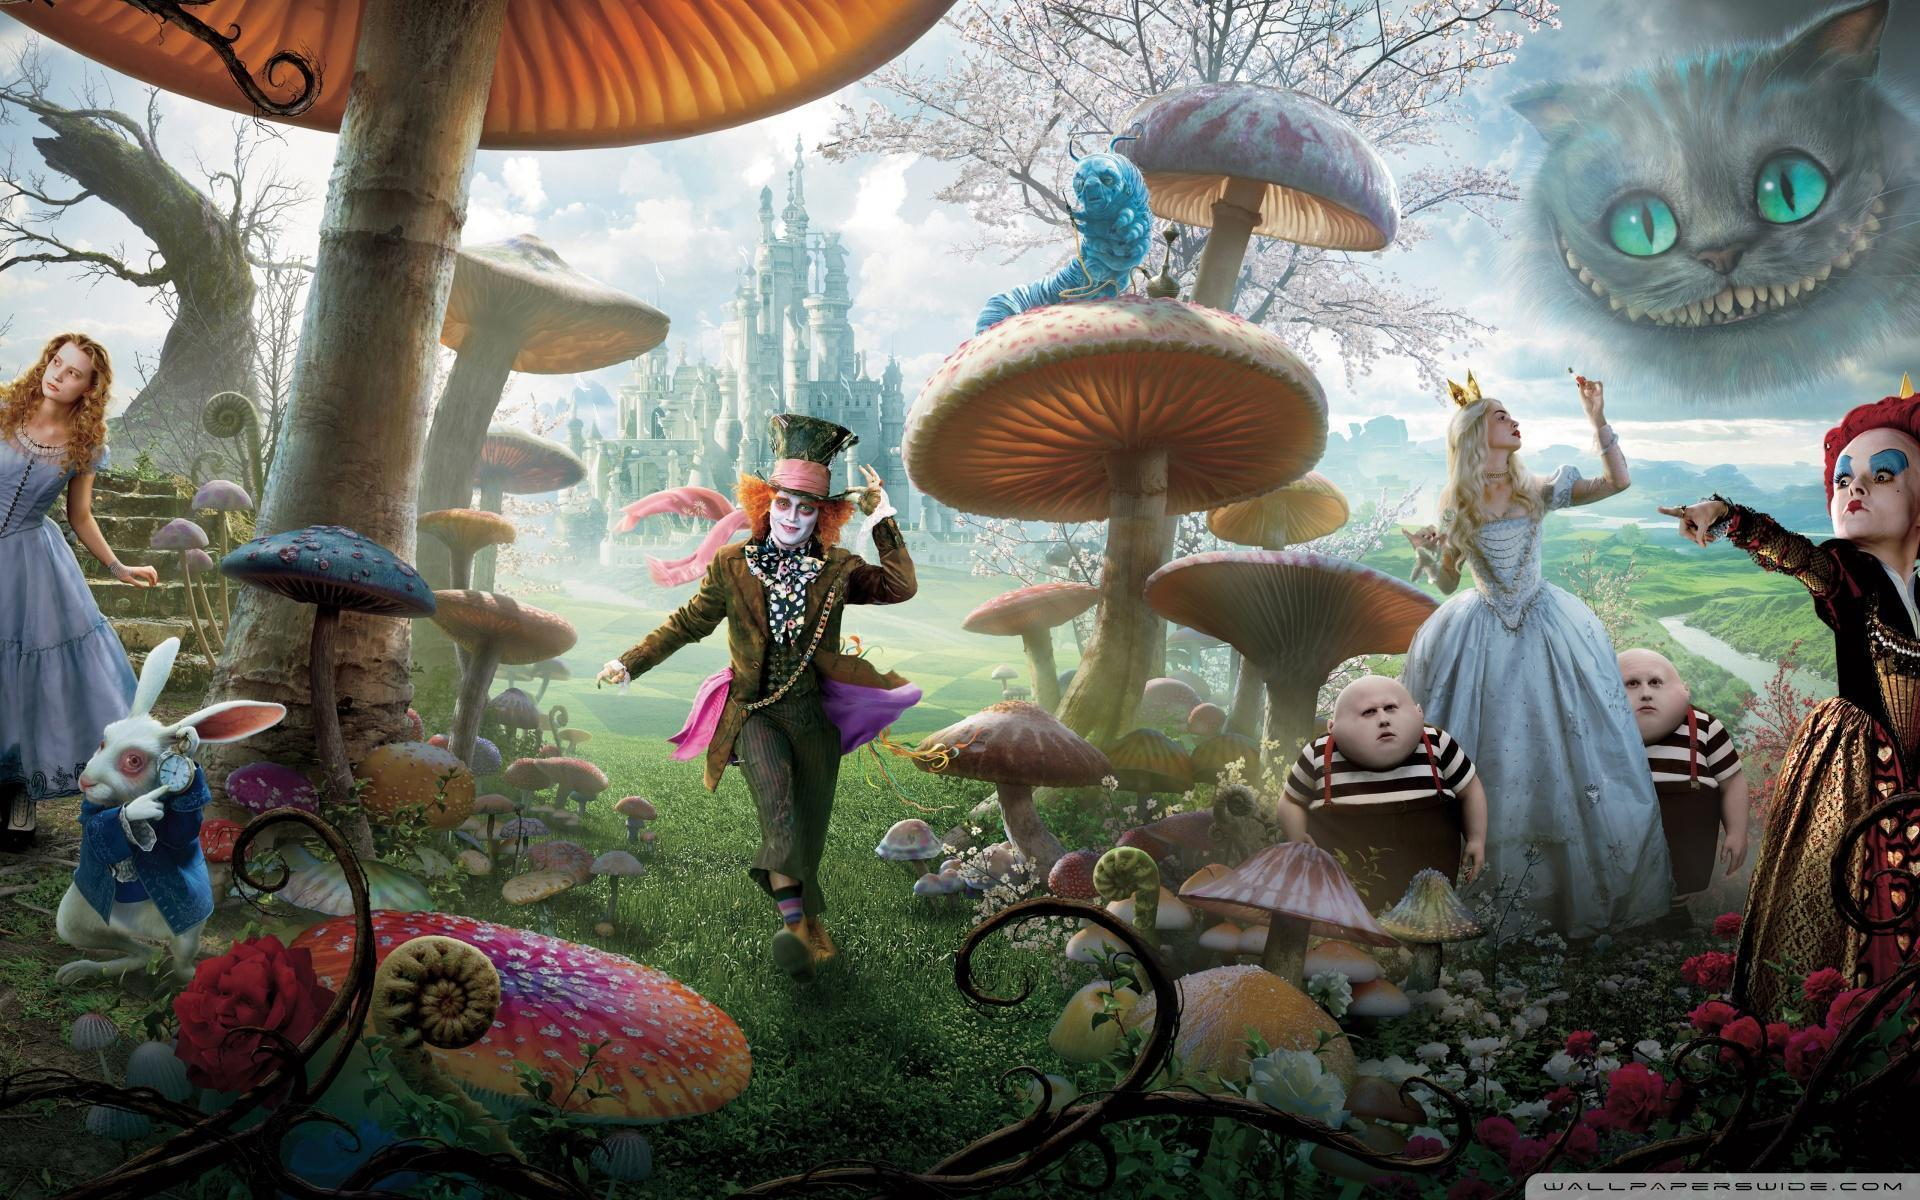 alice_in_wonderland_movie_2010-wallpaper-1920x1200 Nerdipop